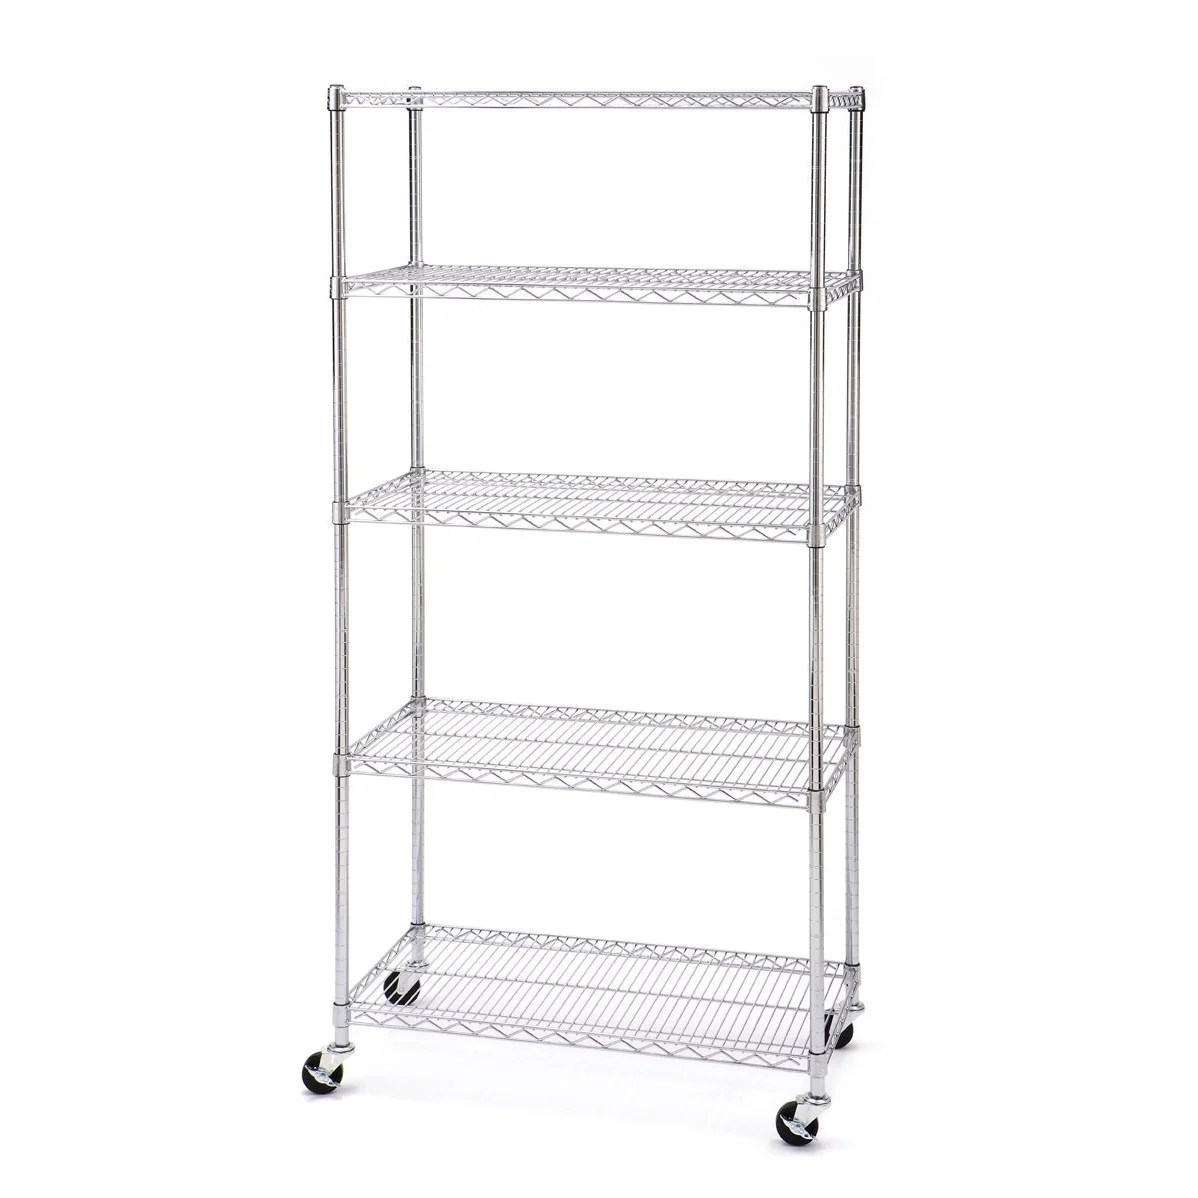 Seville Classics Ultrazinc Nsf Commercial Wire System 72